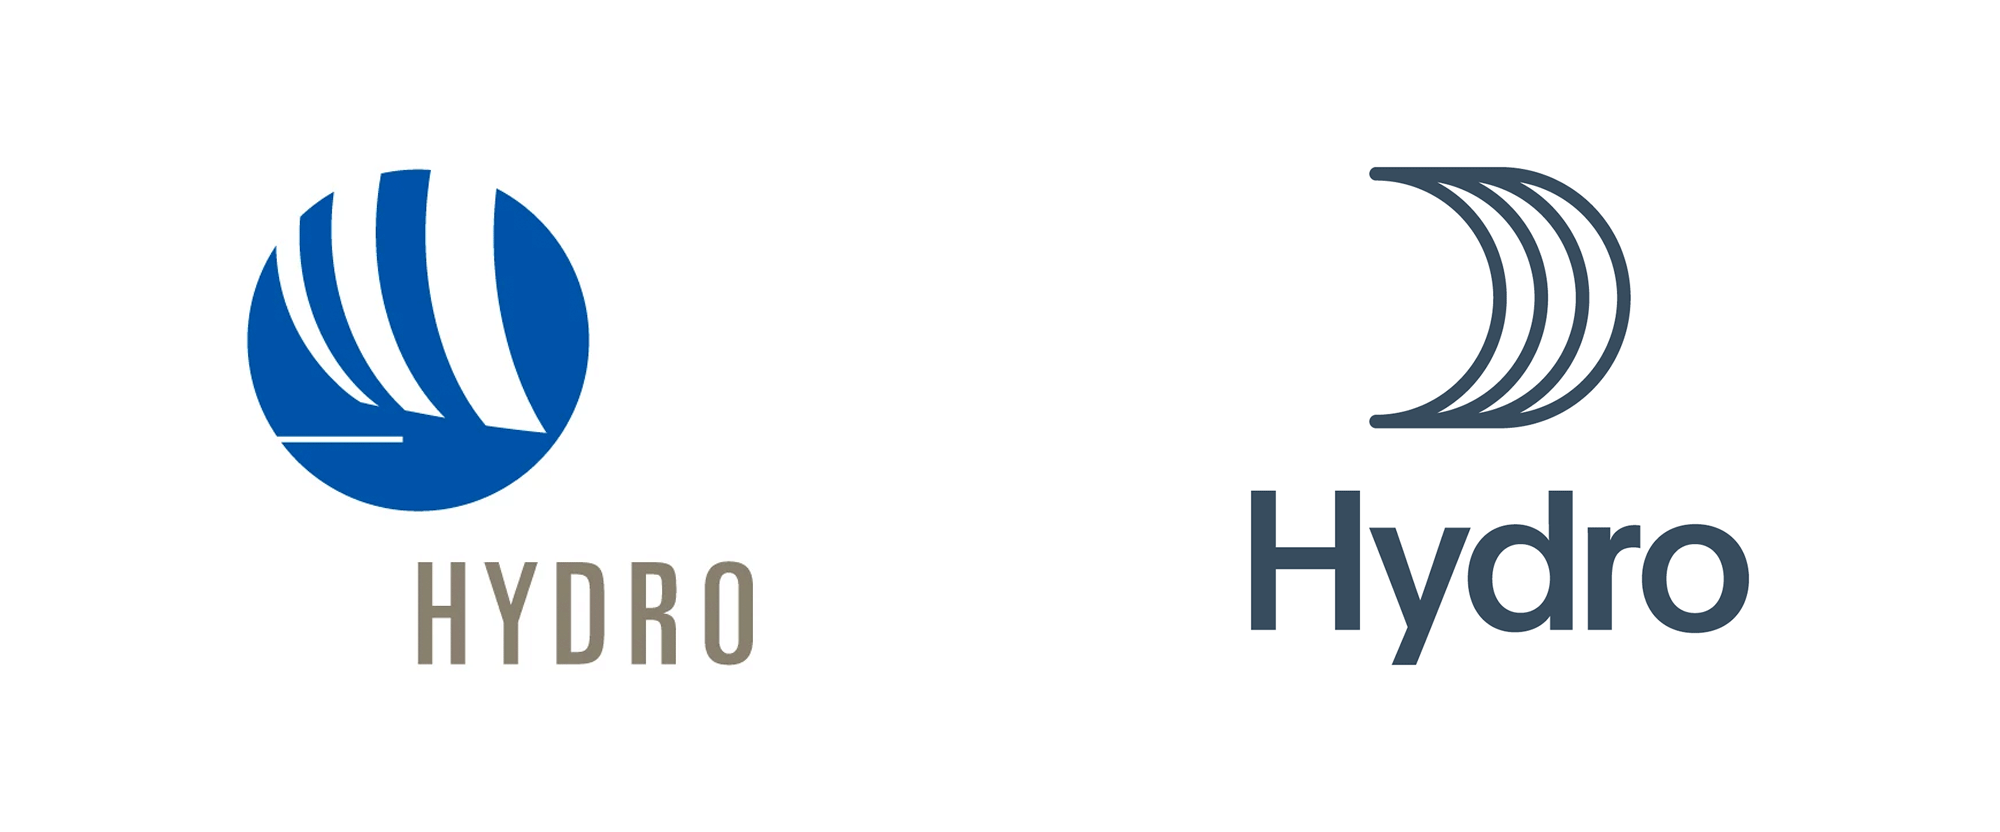 New Logo and Identity for Hydro by Snøhetta